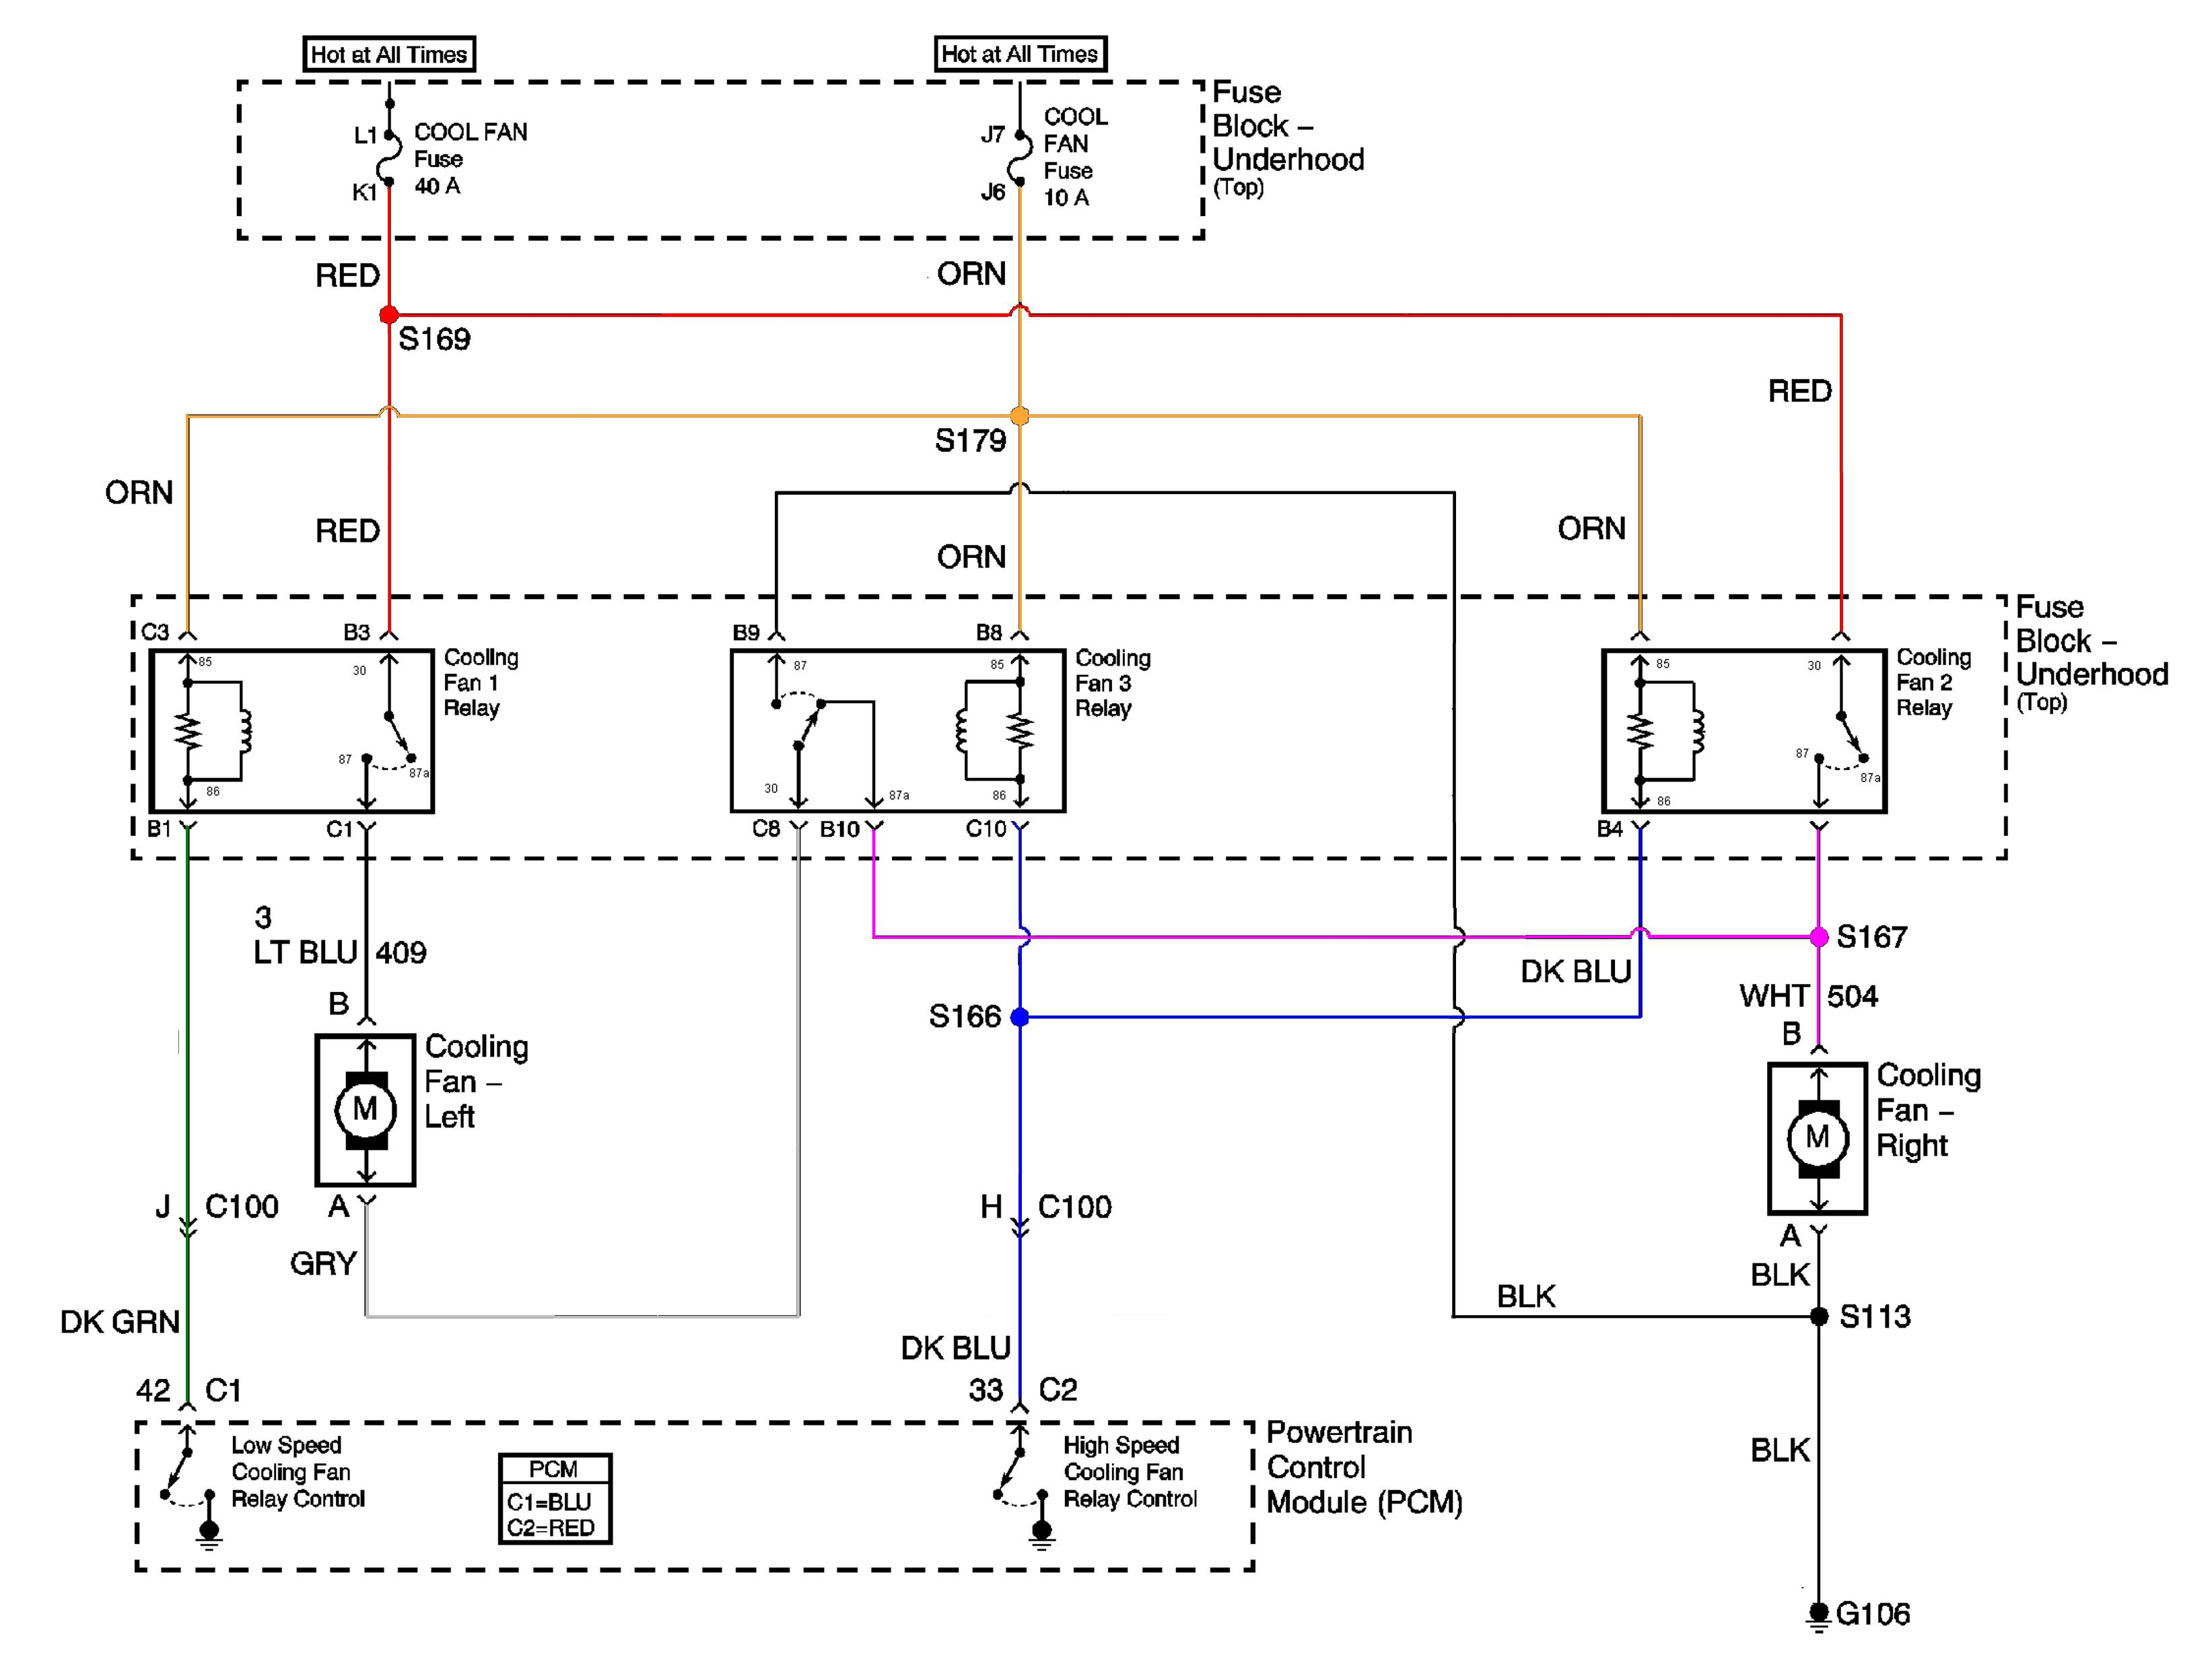 spal thermo fan wiring diagram turn signal intake miata one off the stock pcm and harness ls1tech